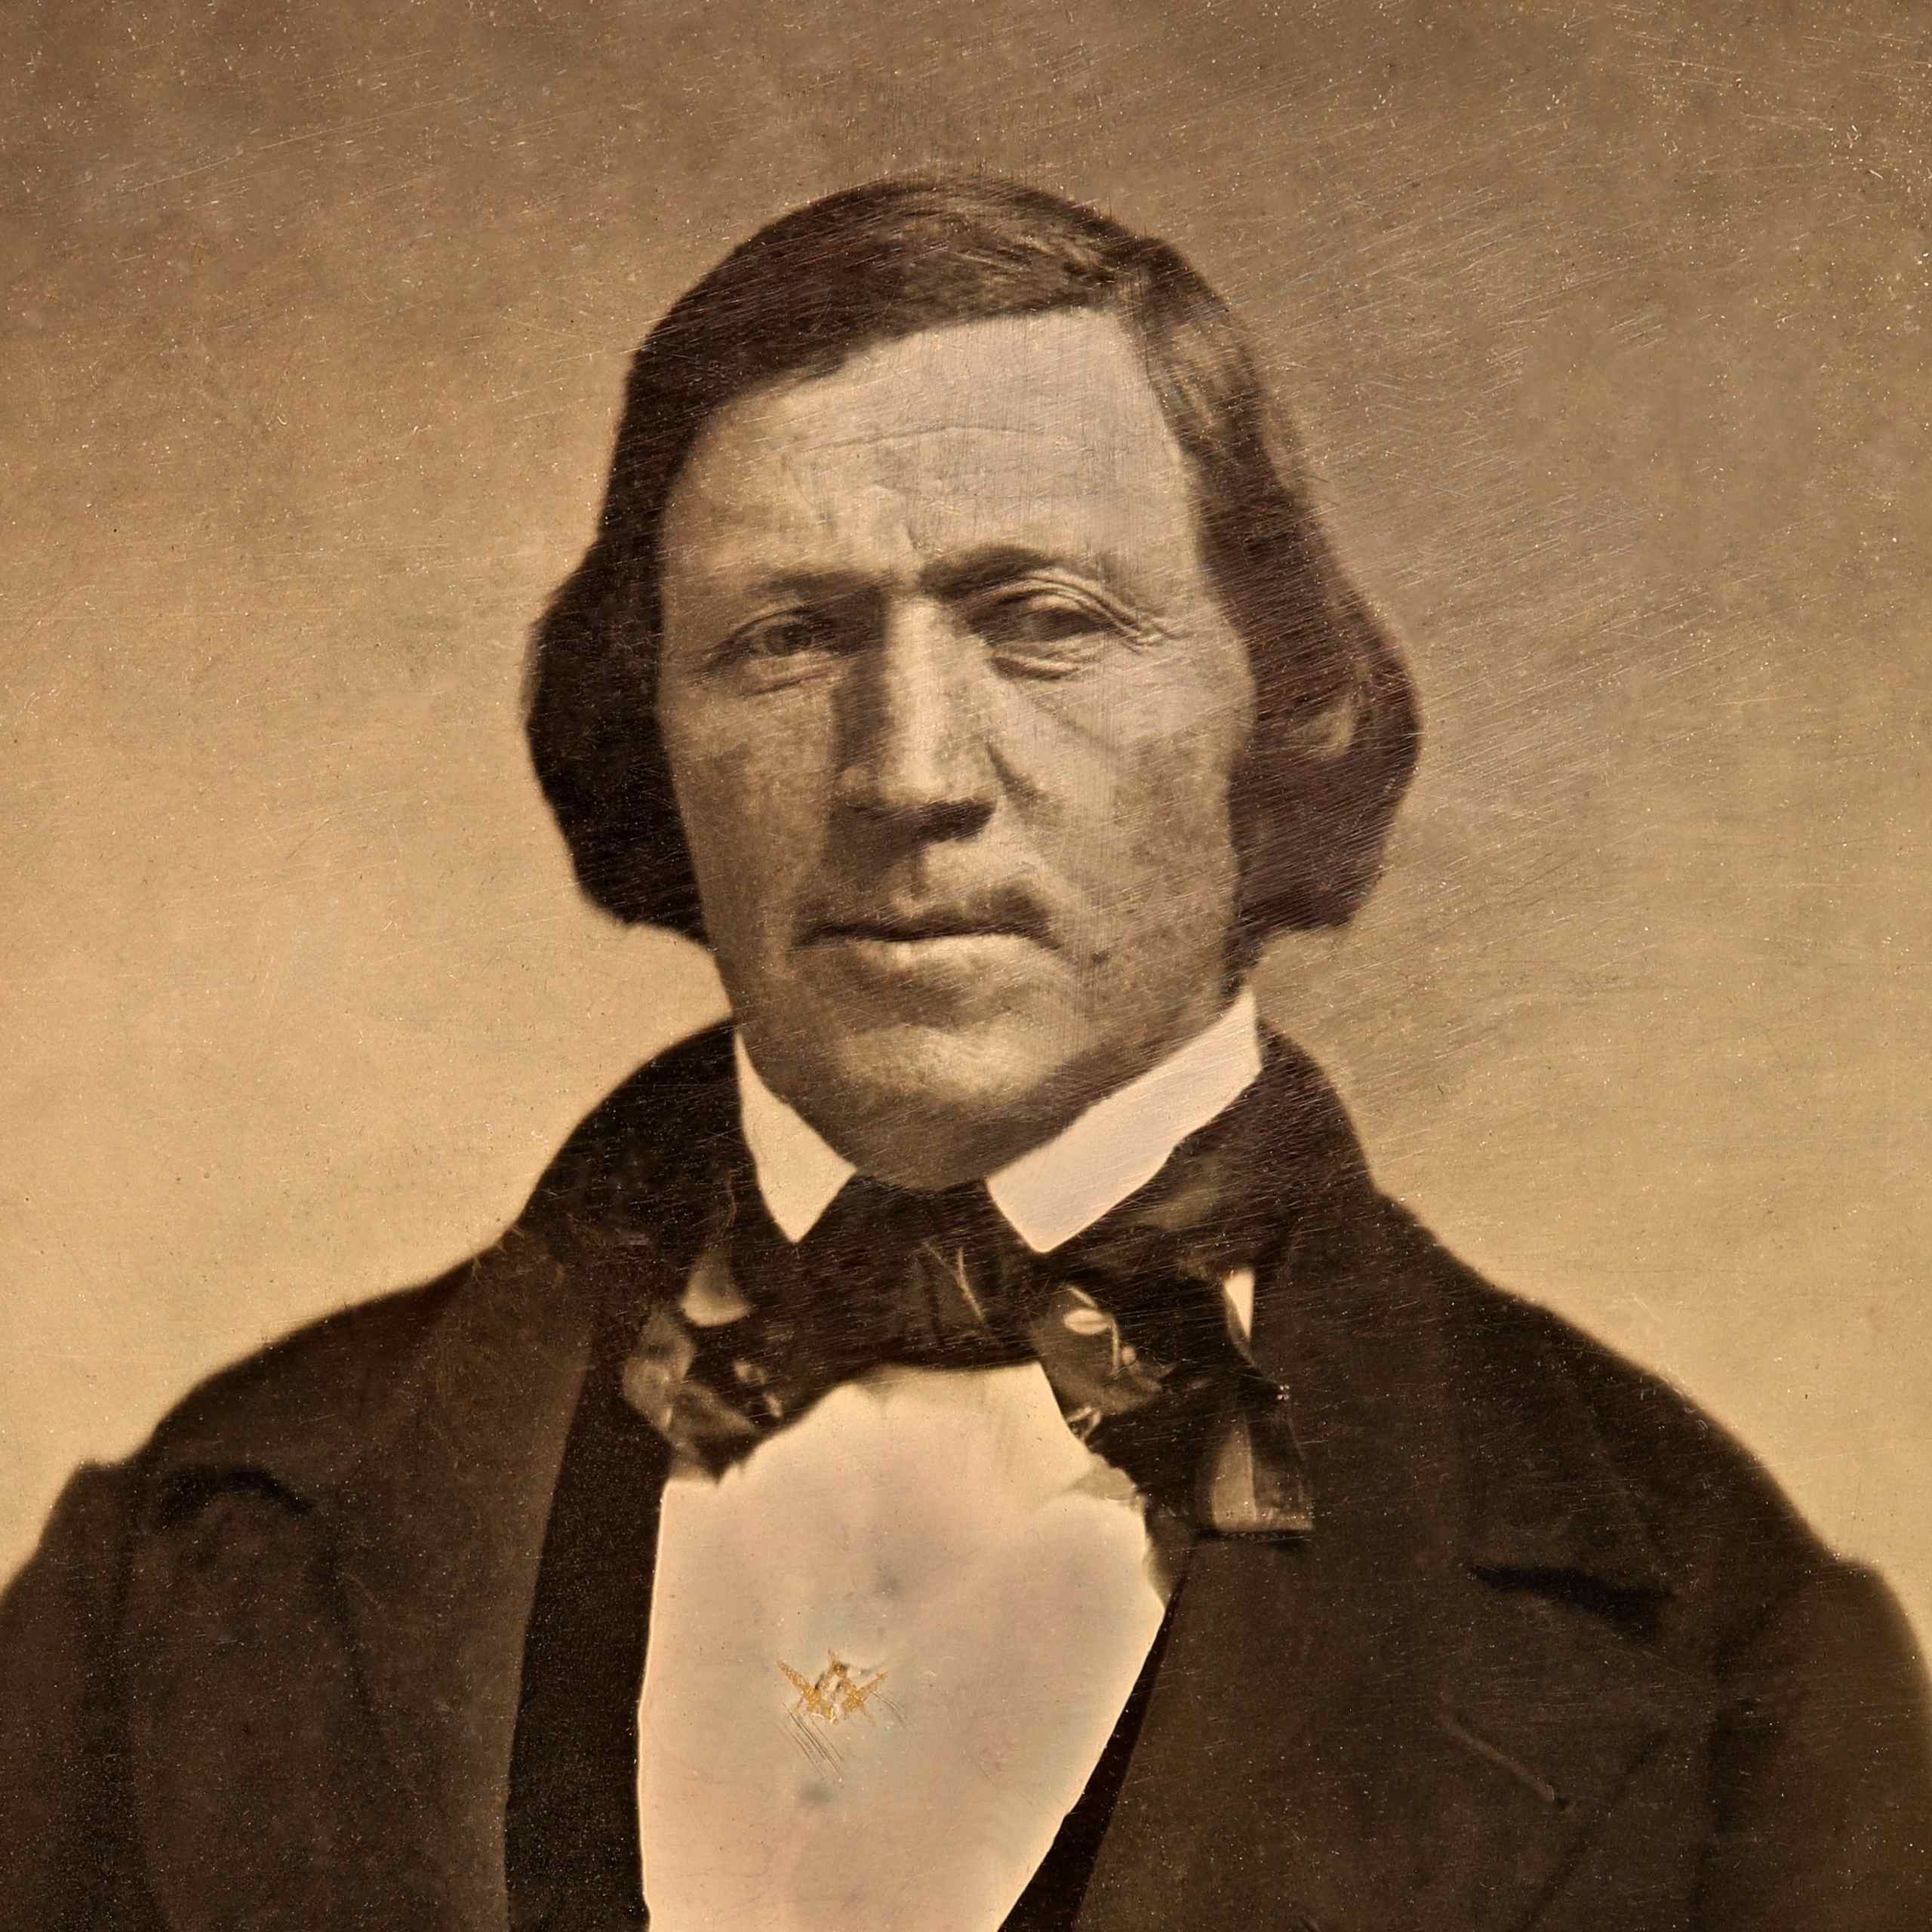 Brigham Young in the 1850s